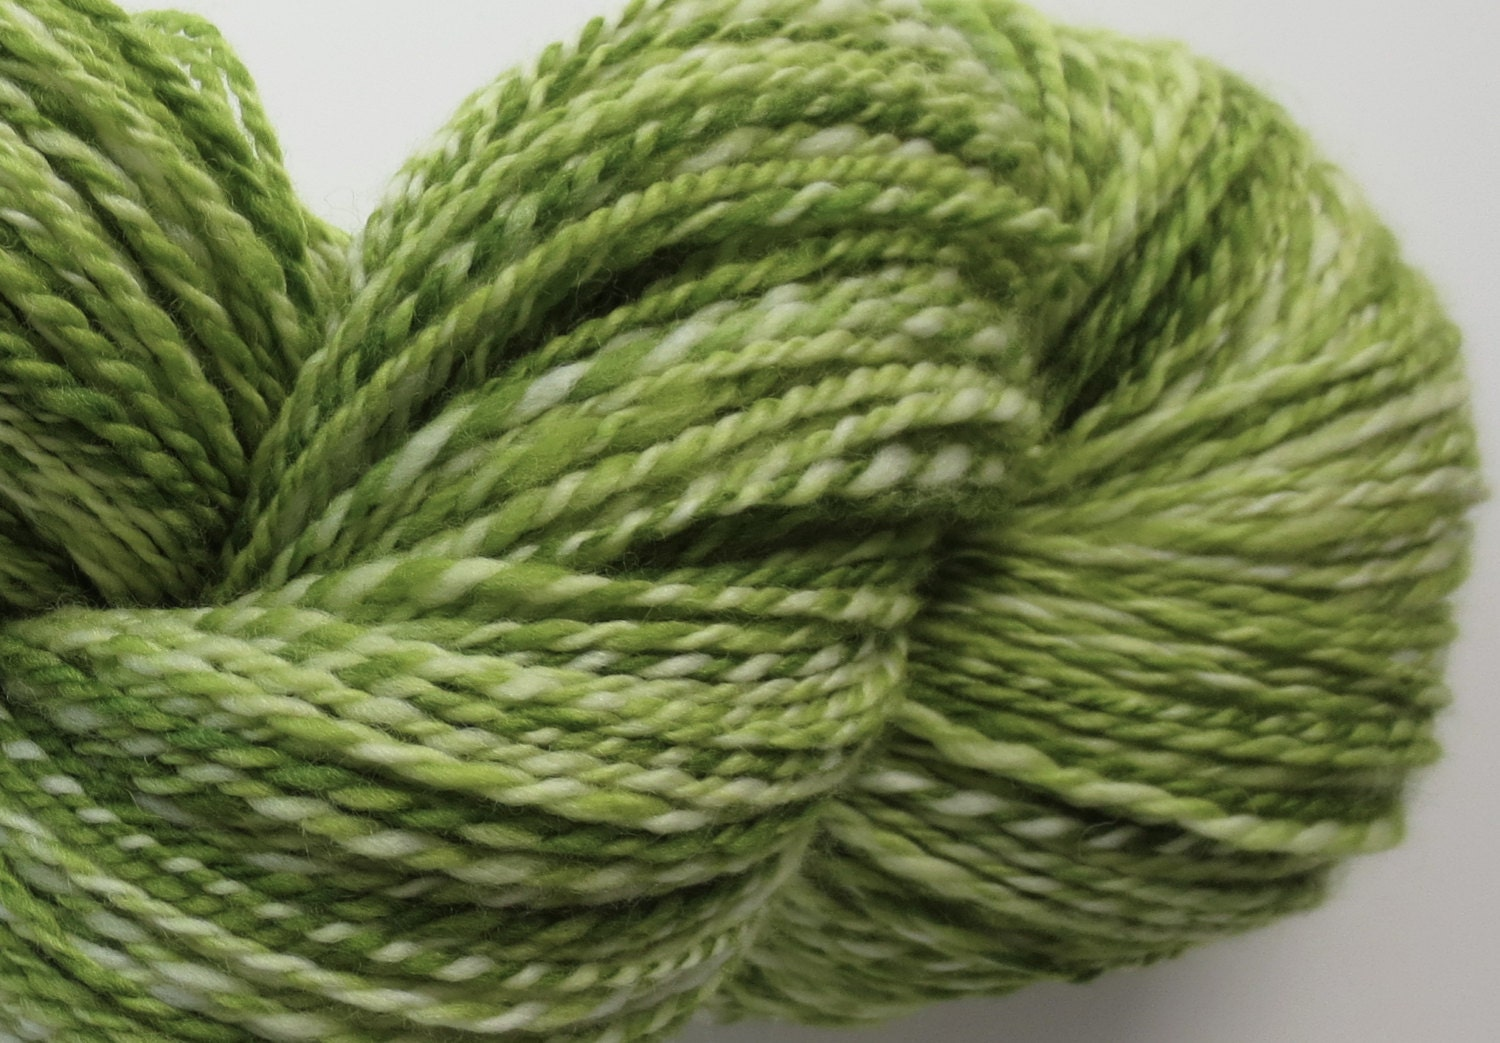 Spring Green Superwash Merino Handspun yarn 338 yards, DK- Light worsted weight